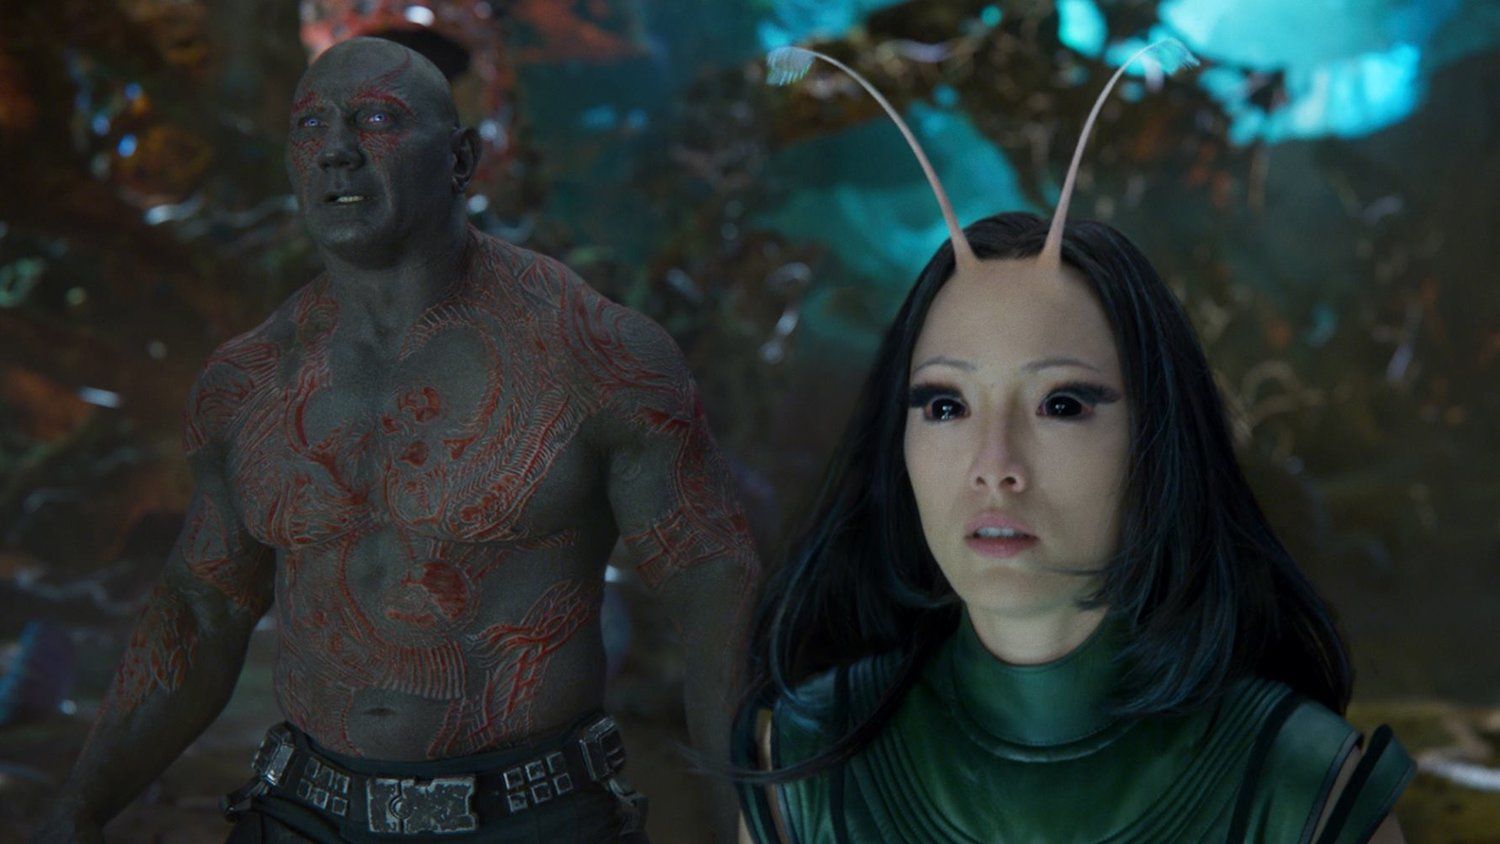 Pom Klementieff Teases an Awkward Romance Between Mantis and Drax in GUARDIANS OF THE GALAXY VOL. 2